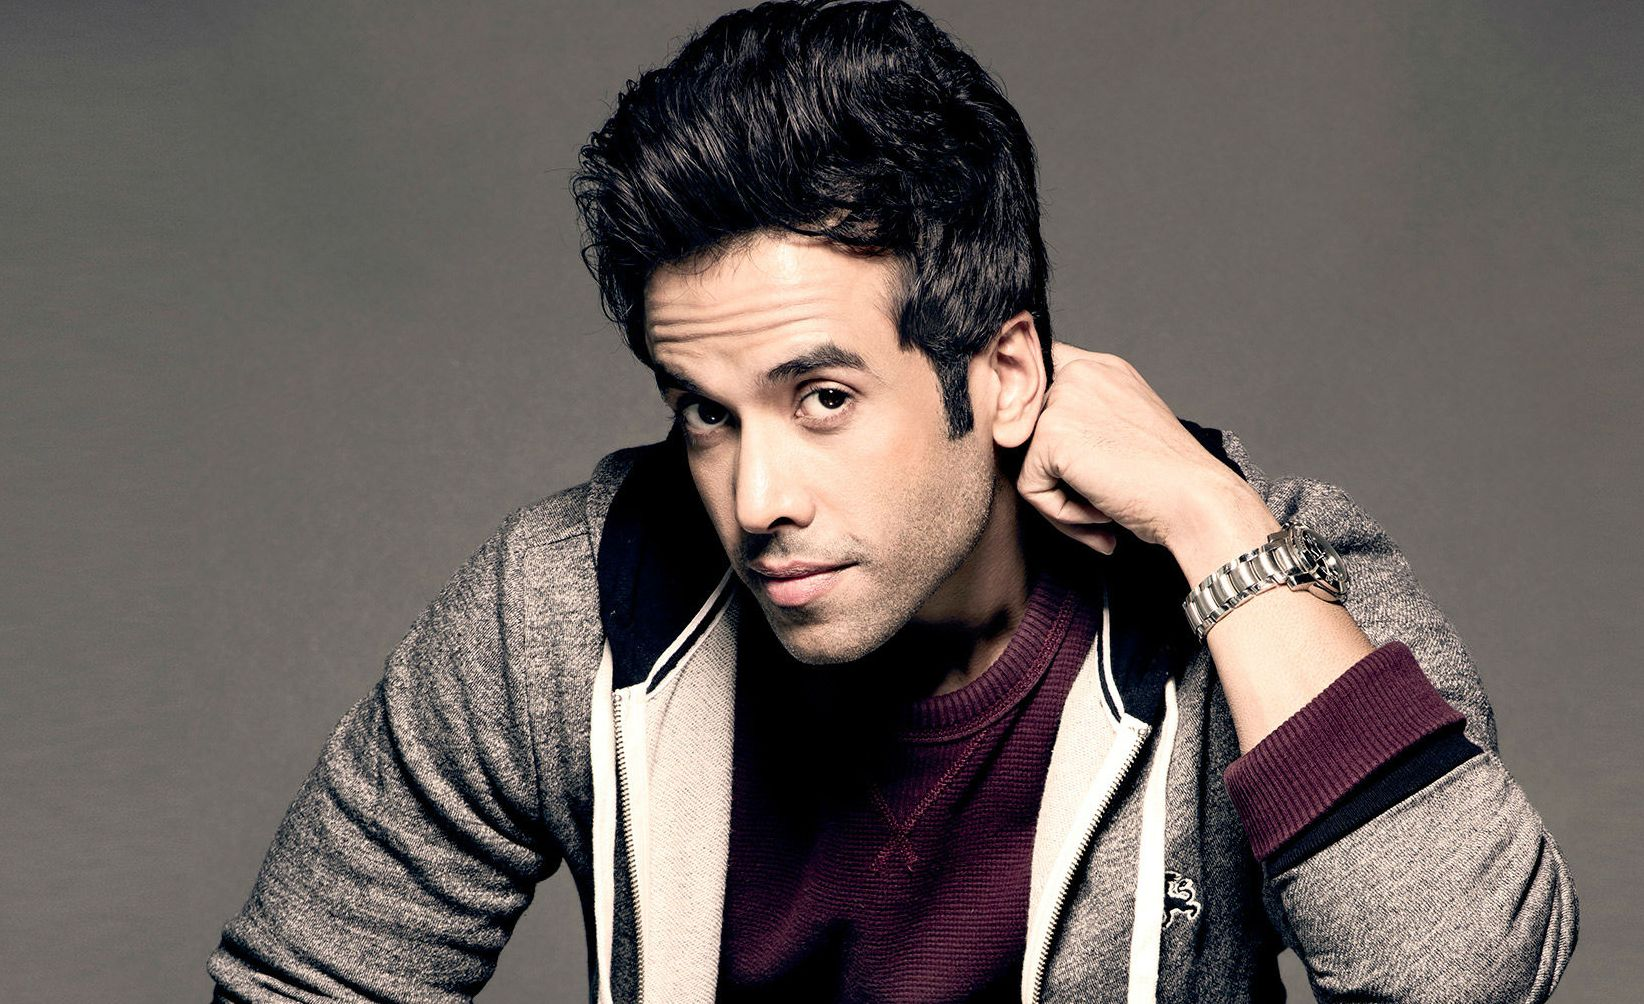 Tusshar kapoor is a father 7 of his other achievements that gave us major life goals